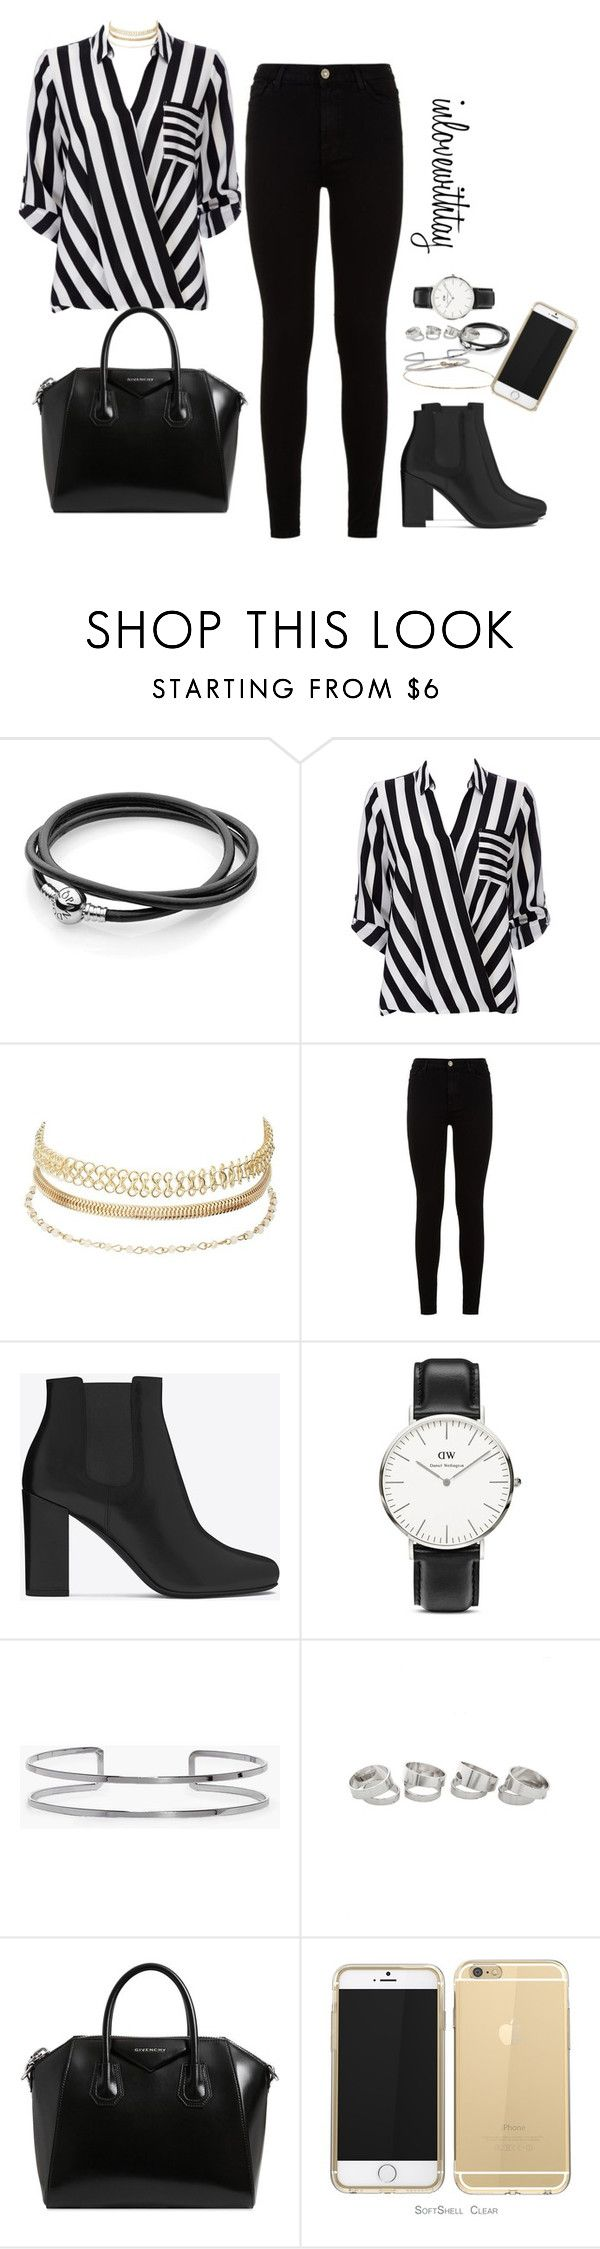 11❤ by inlovewithtay on Polyvore featuring mode, Wallis, 7 For All Mankind, Yves Saint Laurent, Givenchy, Daniel Wellington, Boohoo and Charlotte Russe